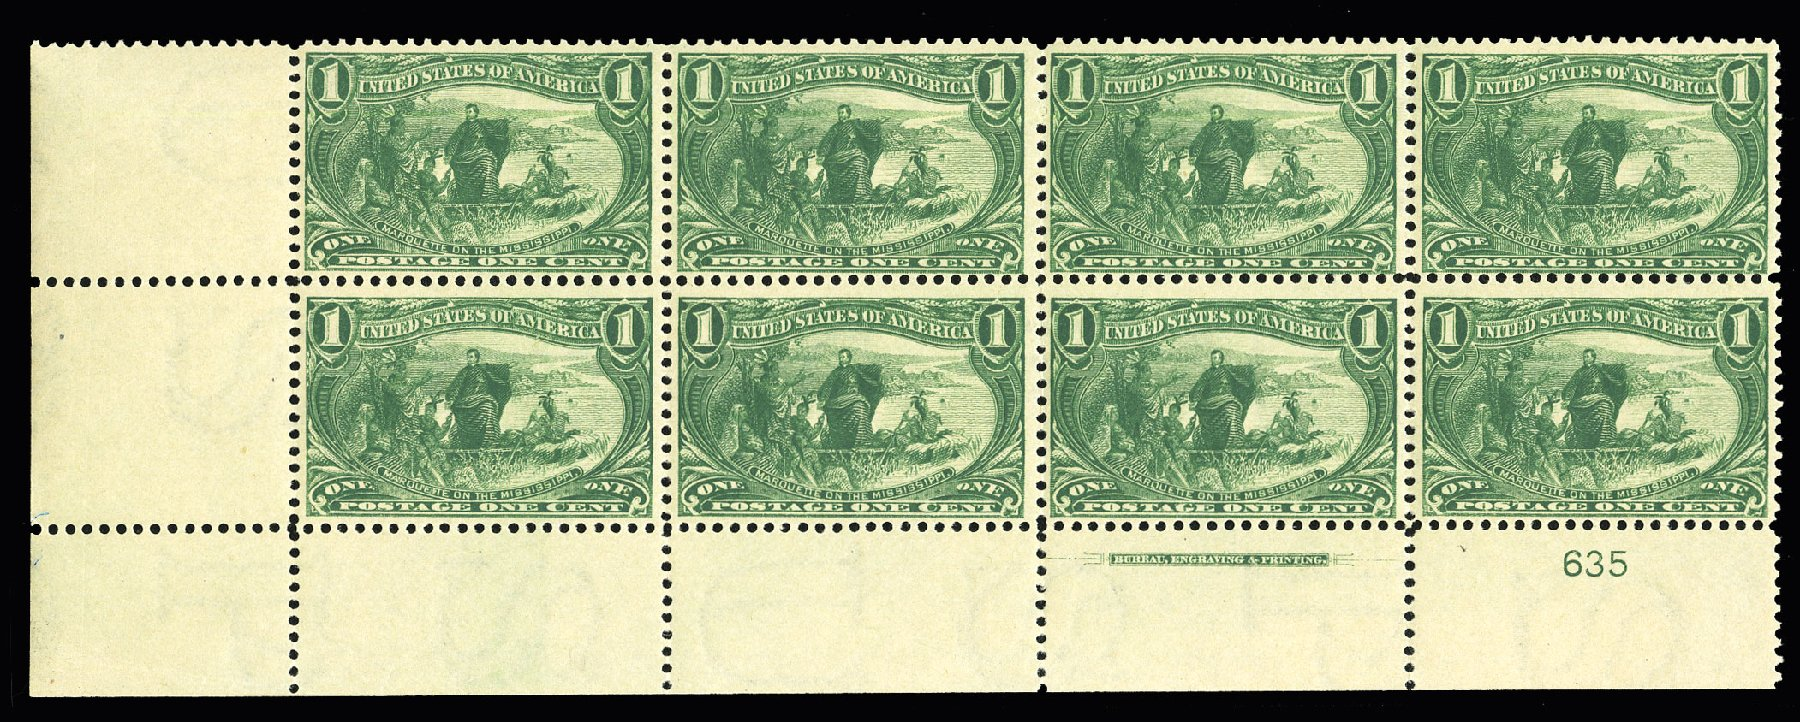 Price of US Stamp Scott Catalogue #285: 1898 1c Trans Mississippi Exposition. Cherrystone Auctions, Jul 2015, Sale 201507, Lot 2096